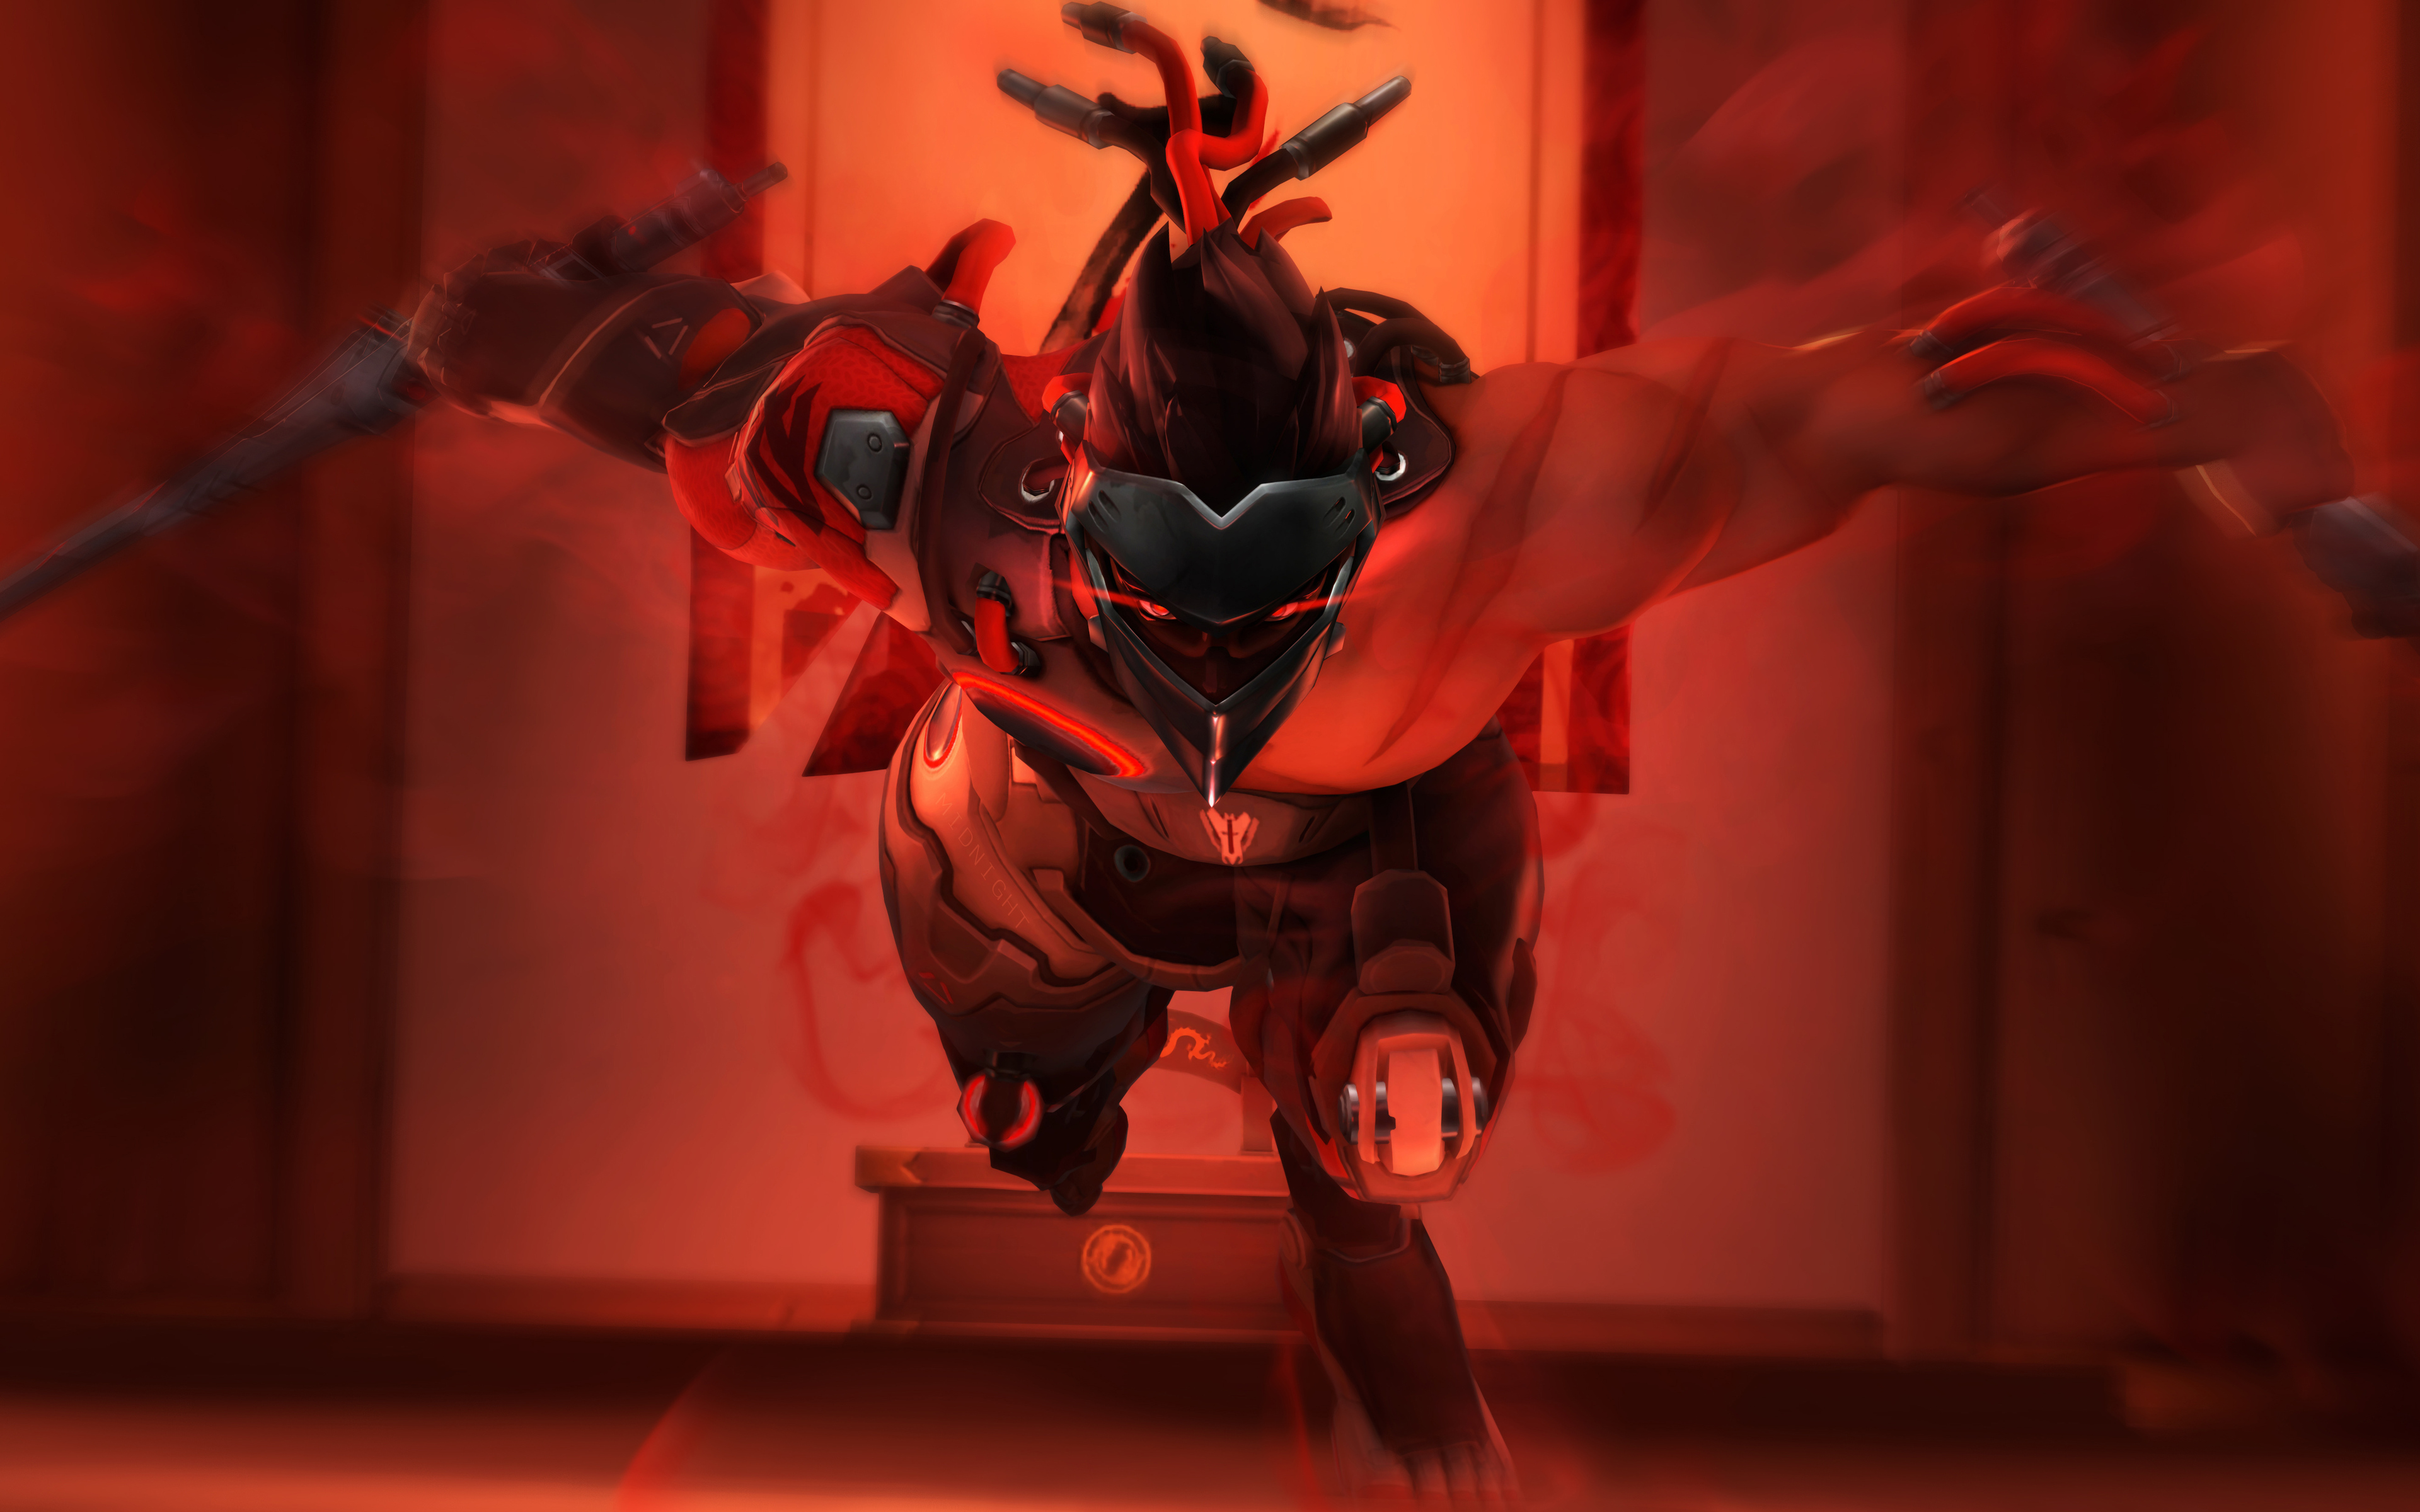 genji-overwatch-blackwatch-art-5k-dr.jpg